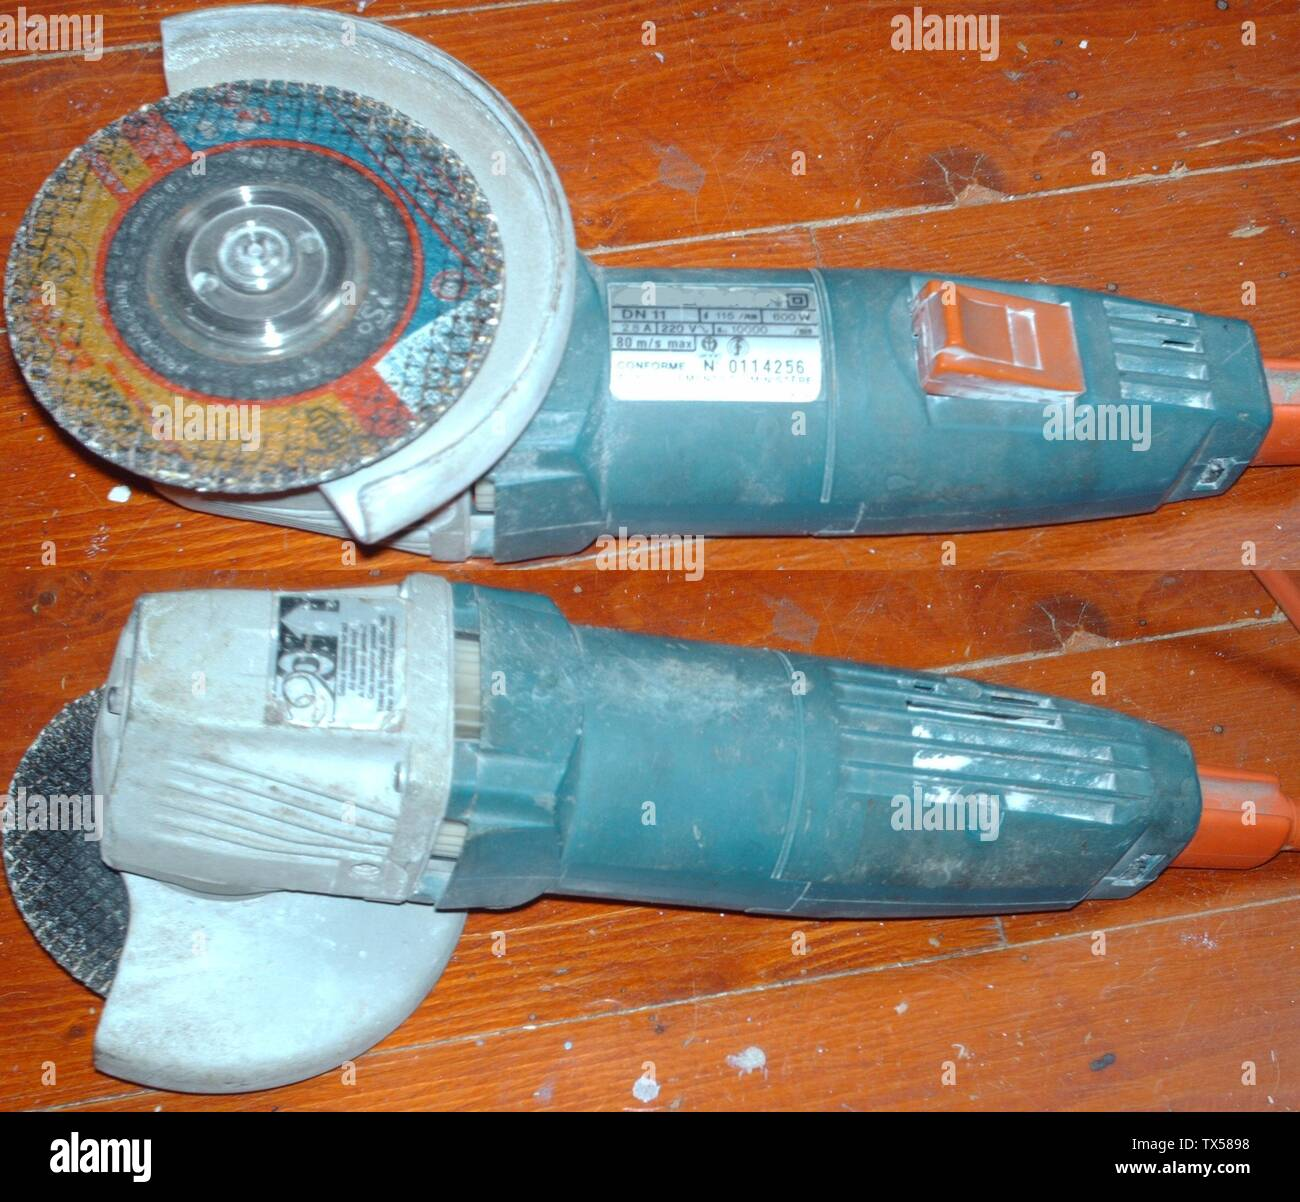 'Nederlands: Een Haakse slijper, merk weggeveegd door Primaxyes. English: An Angle grinder, mark rubbed out by Primaxyes.; 1 June 2007 (original upload date); Transferred from nl.wikipedia to Commons.; Primaxyes at Dutch Wikipedia; ' - Stock Image